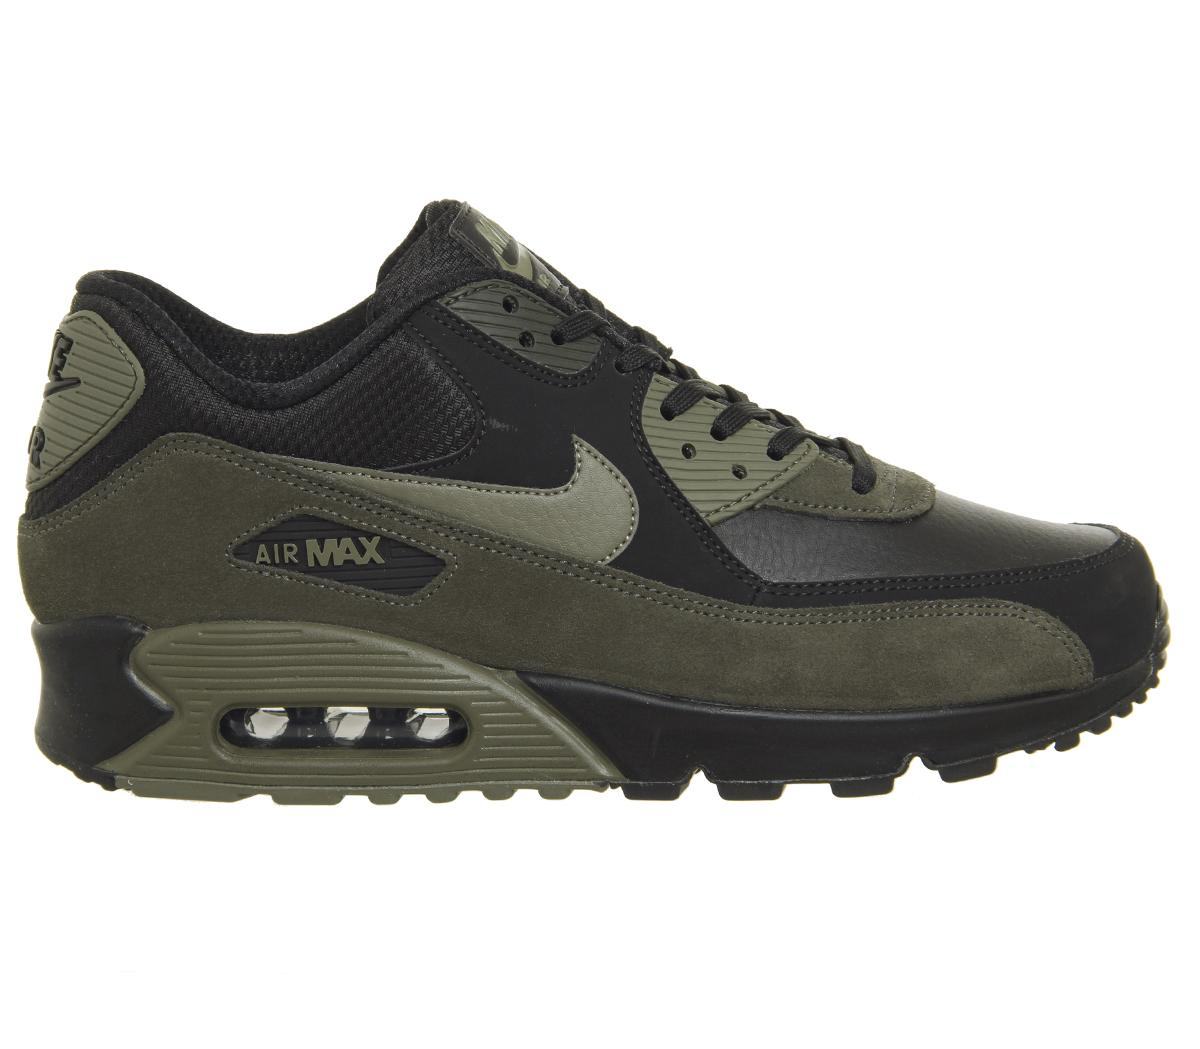 Lyst - Nike Air Max 90 Trainers in Black for Men 65fe46650b